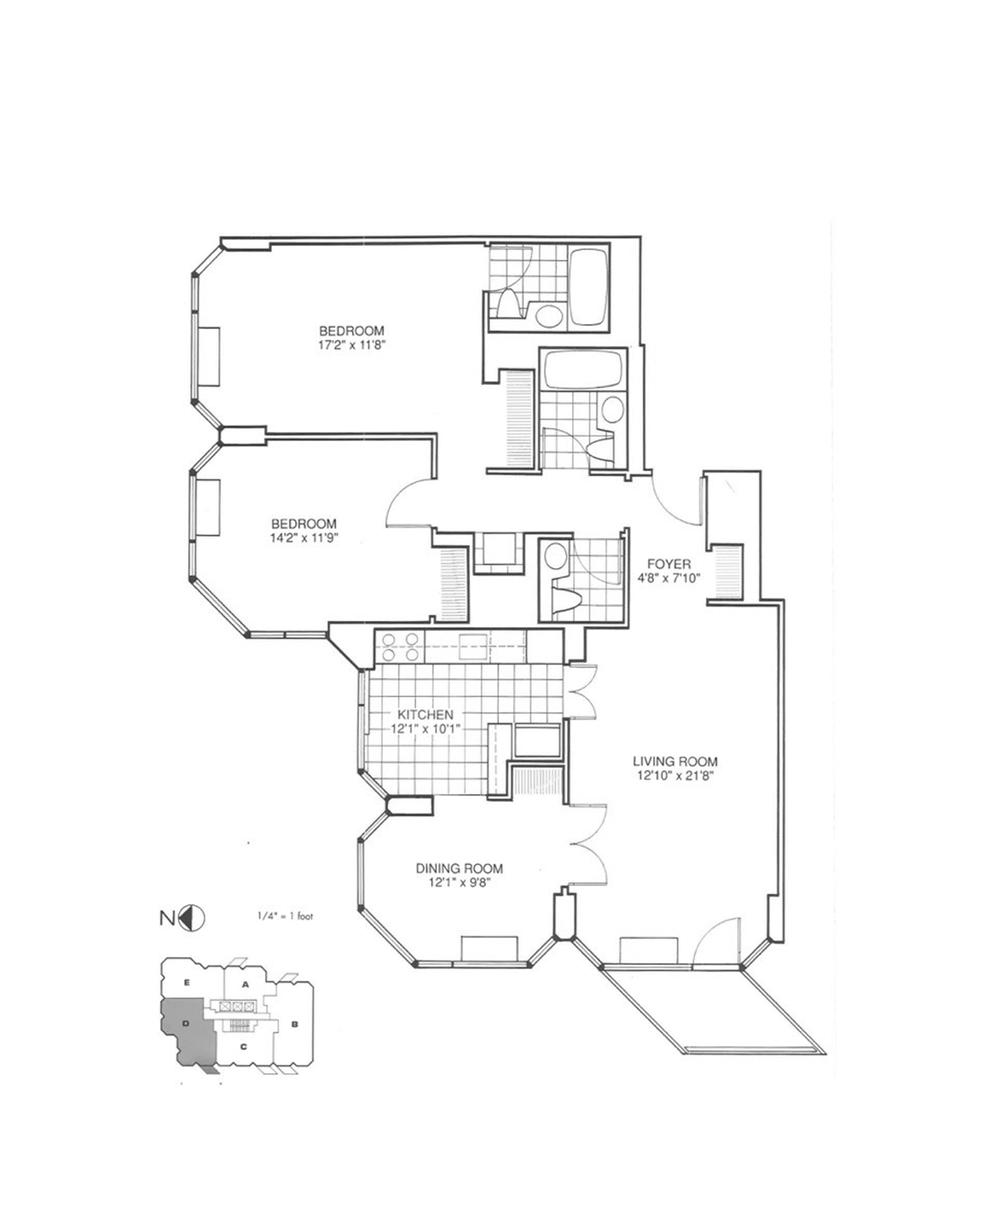 Floor plan showing the parallelogram shape of the balconies. Image: Douglas Elliman